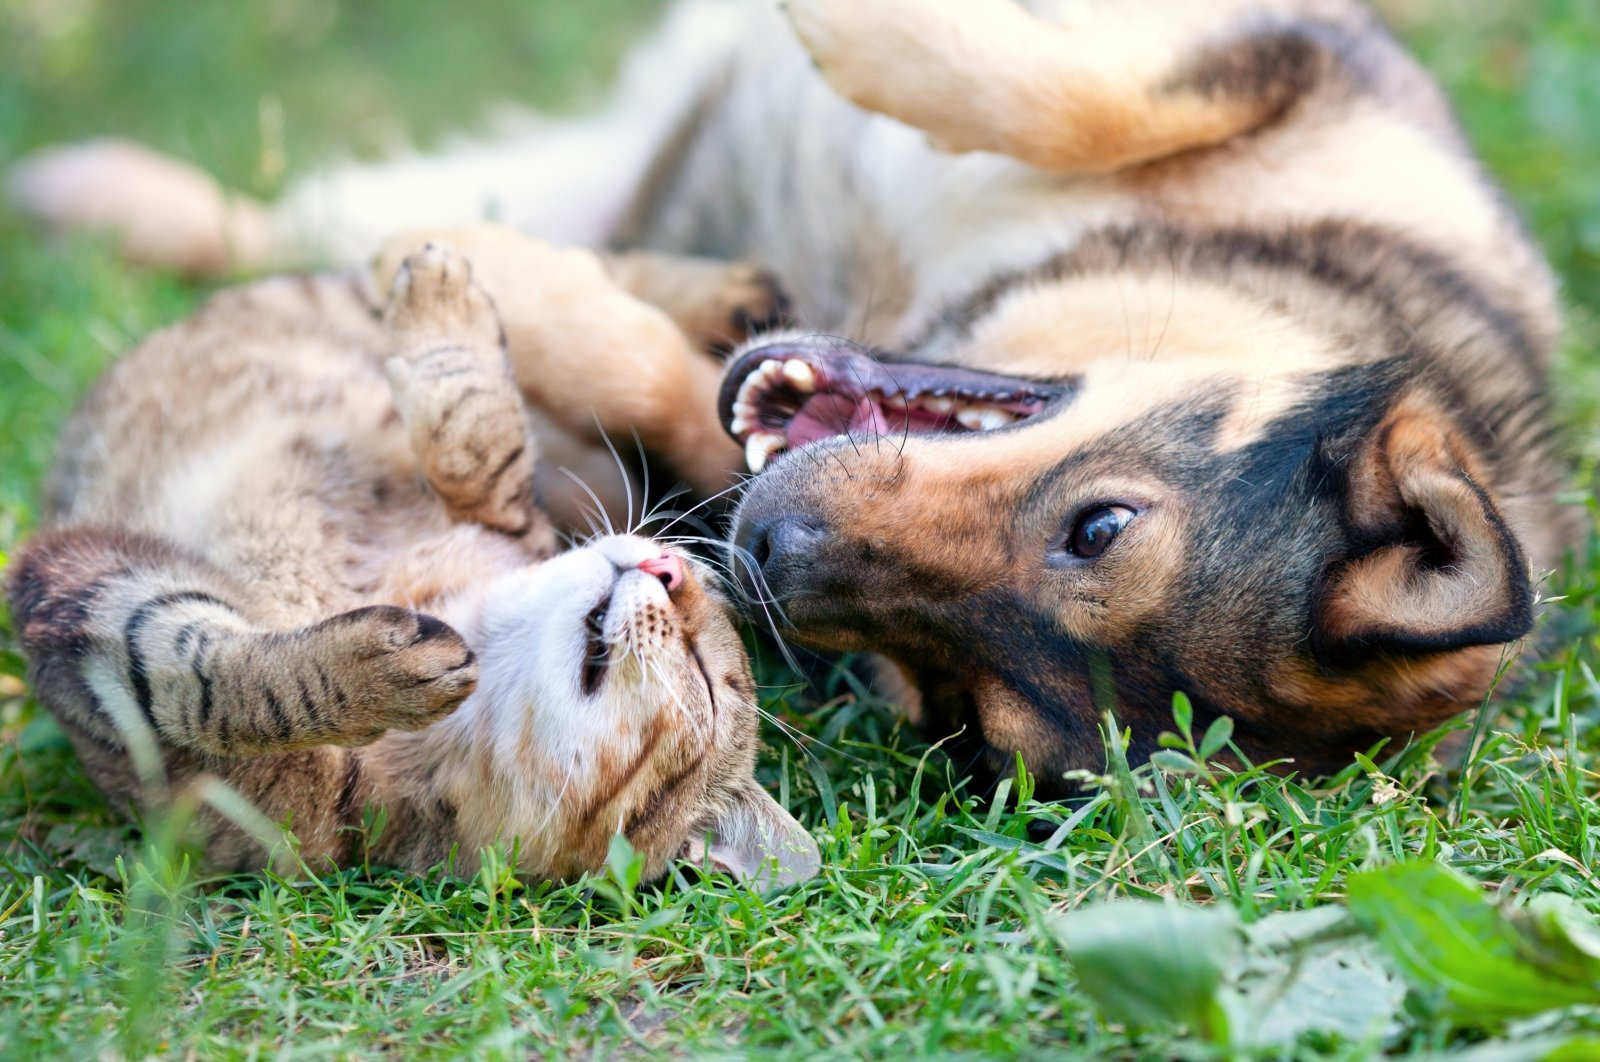 Dog and cat playing together in the outdoors. (Shutterstock Photo)